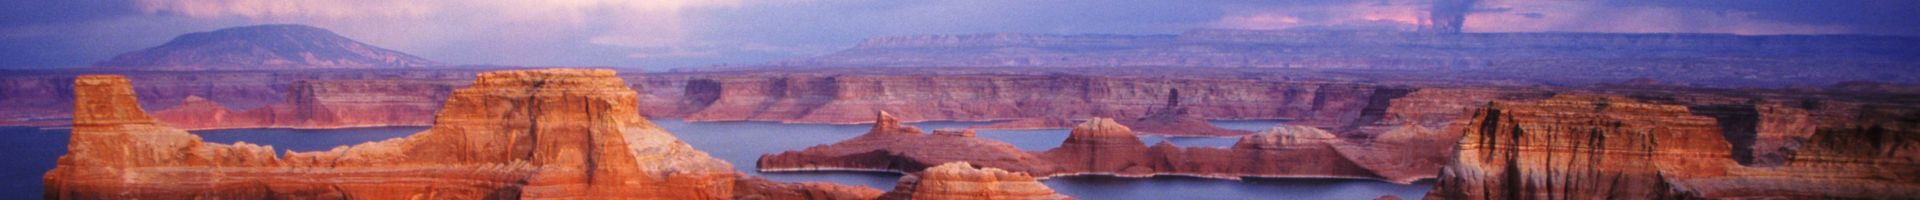 A scenic expanse of Lake Powell's blue waters as well as orange rock formations surrounding them.